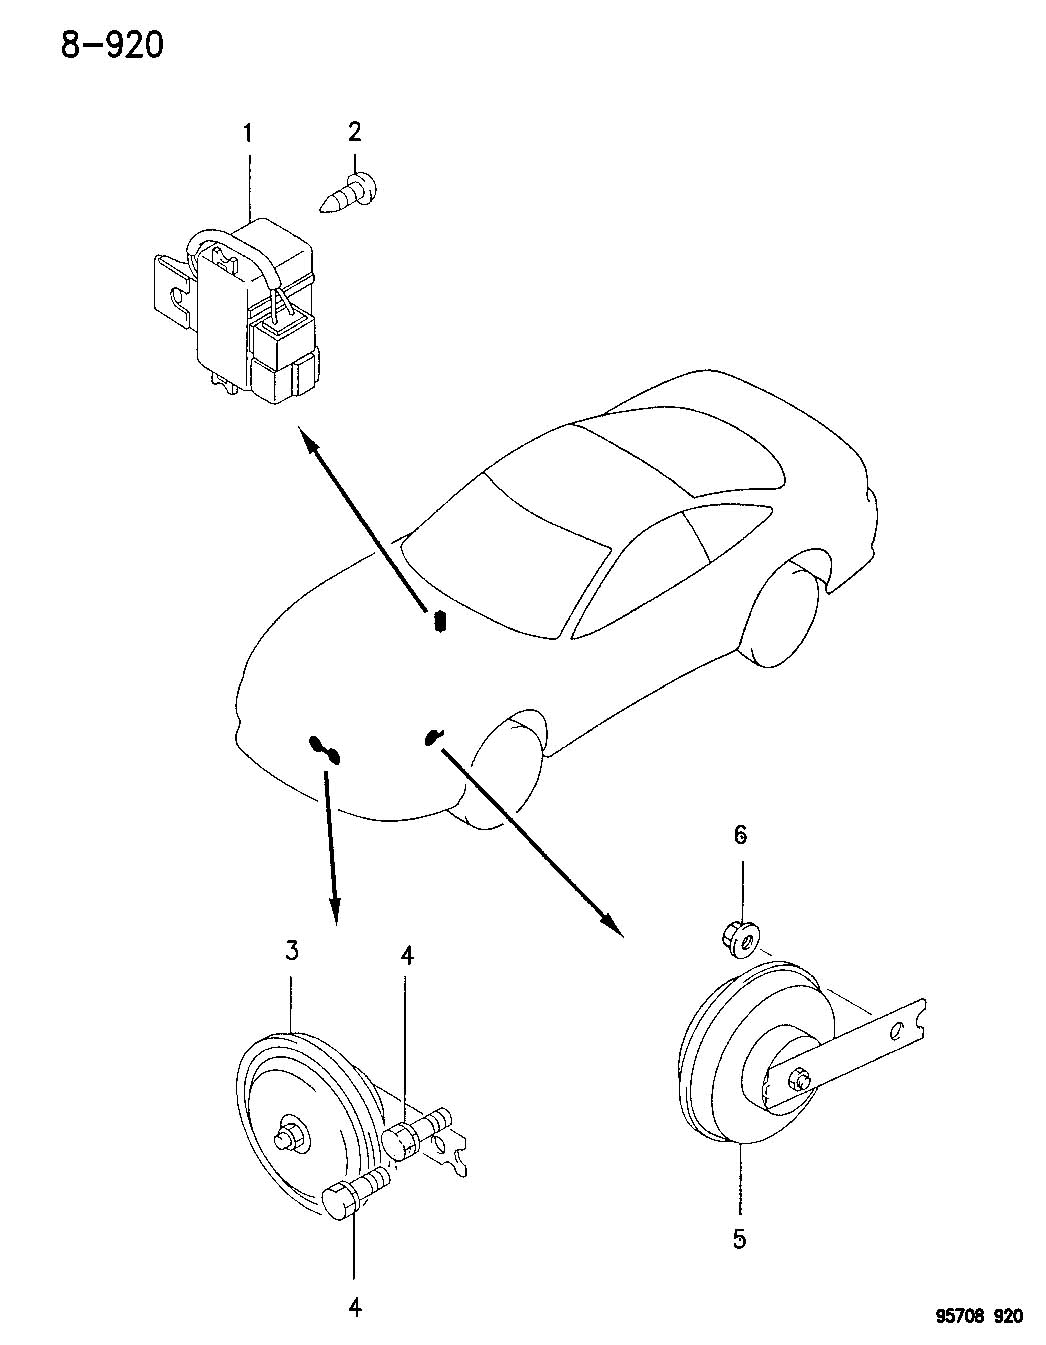 Cars Voc additionally No Tail Lights No Dash Lights 202796 furthermore 422705114996474821 besides 2004 Toyota Rav4 Engine Diagram Toyota Get Free Image About together with 68169357AA. on electric highway diagram